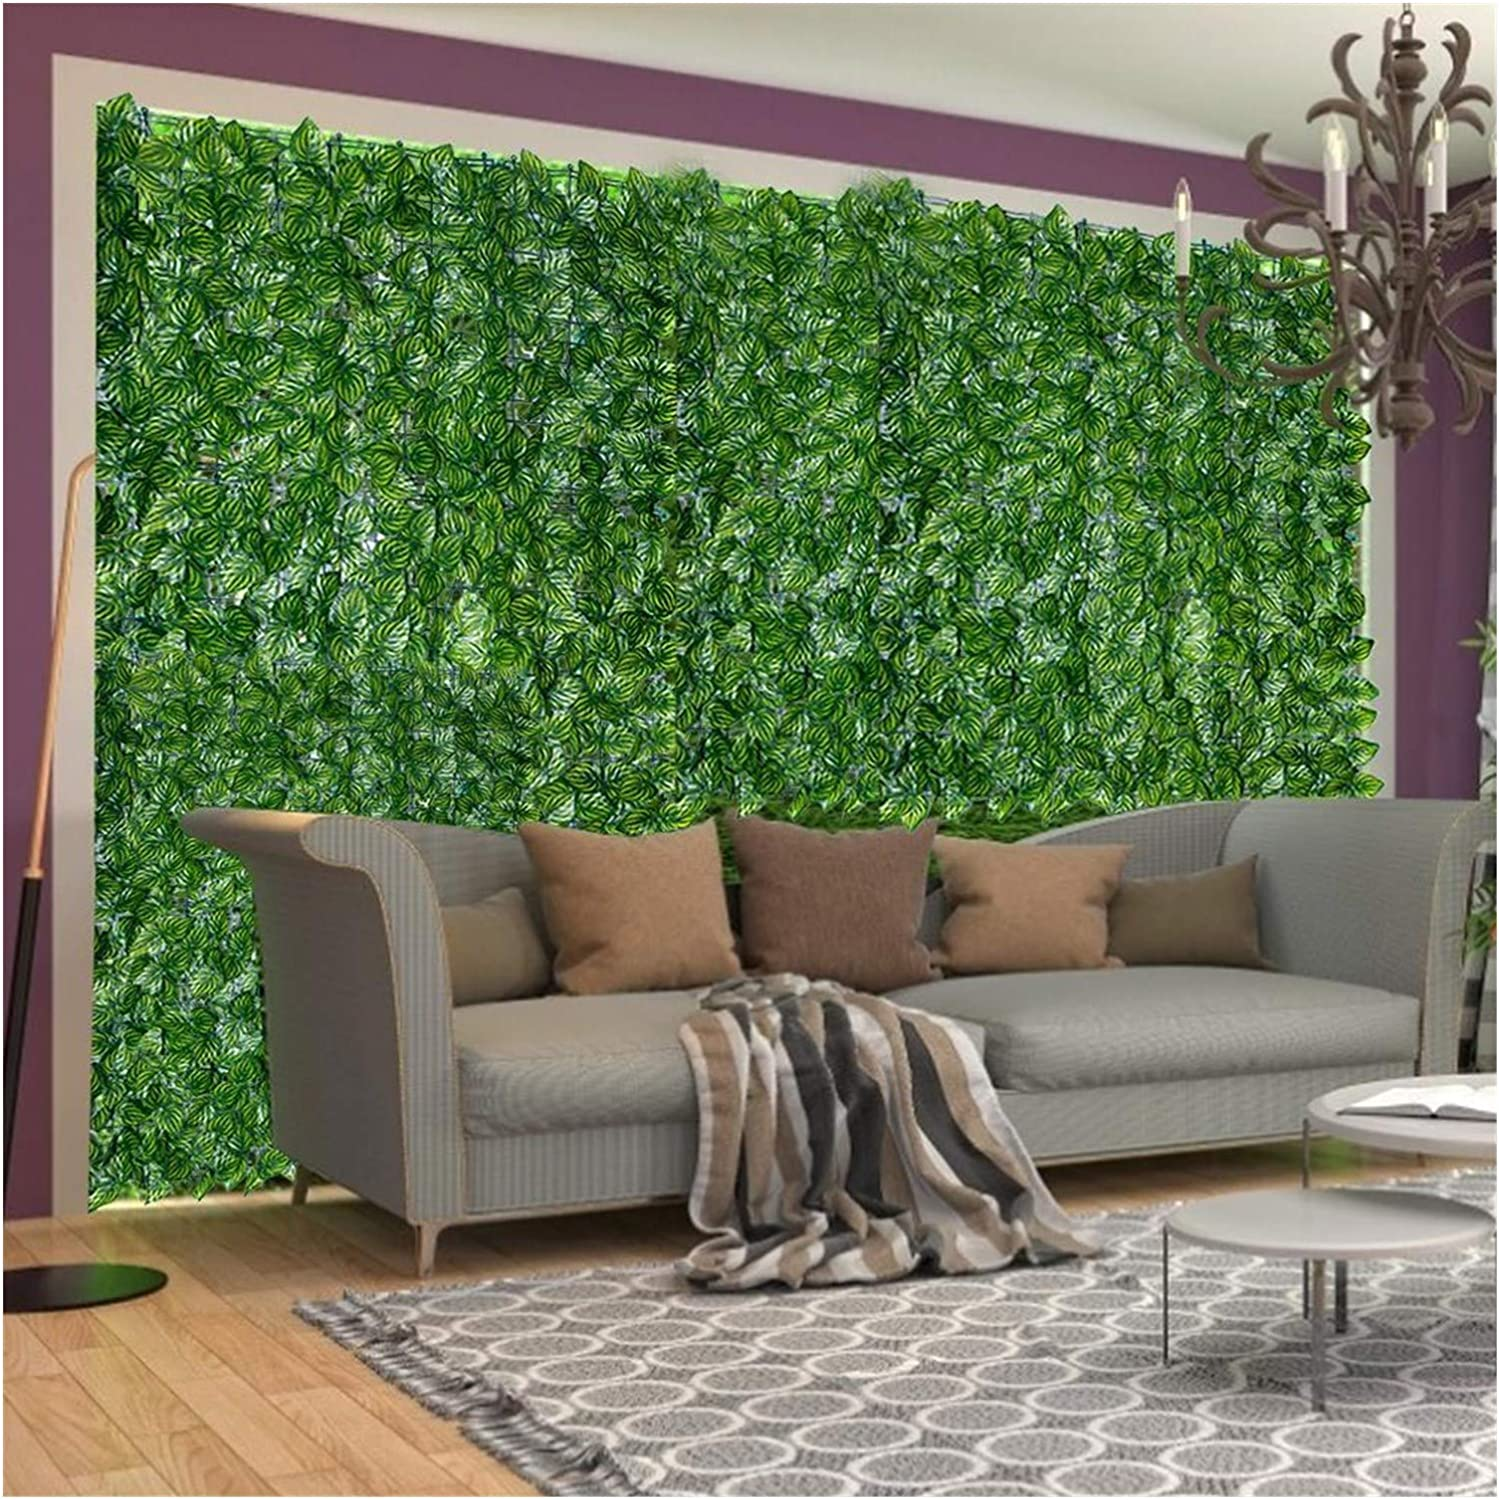 ABD 0.5 * 3M/0.5 * 1M Artificial Leaf Screening Roll Protected Privacy Hedging Wall Landscaping Indoor Out Garden Fence Balcony Screen (Color : 0.5 3M) Navy Blue